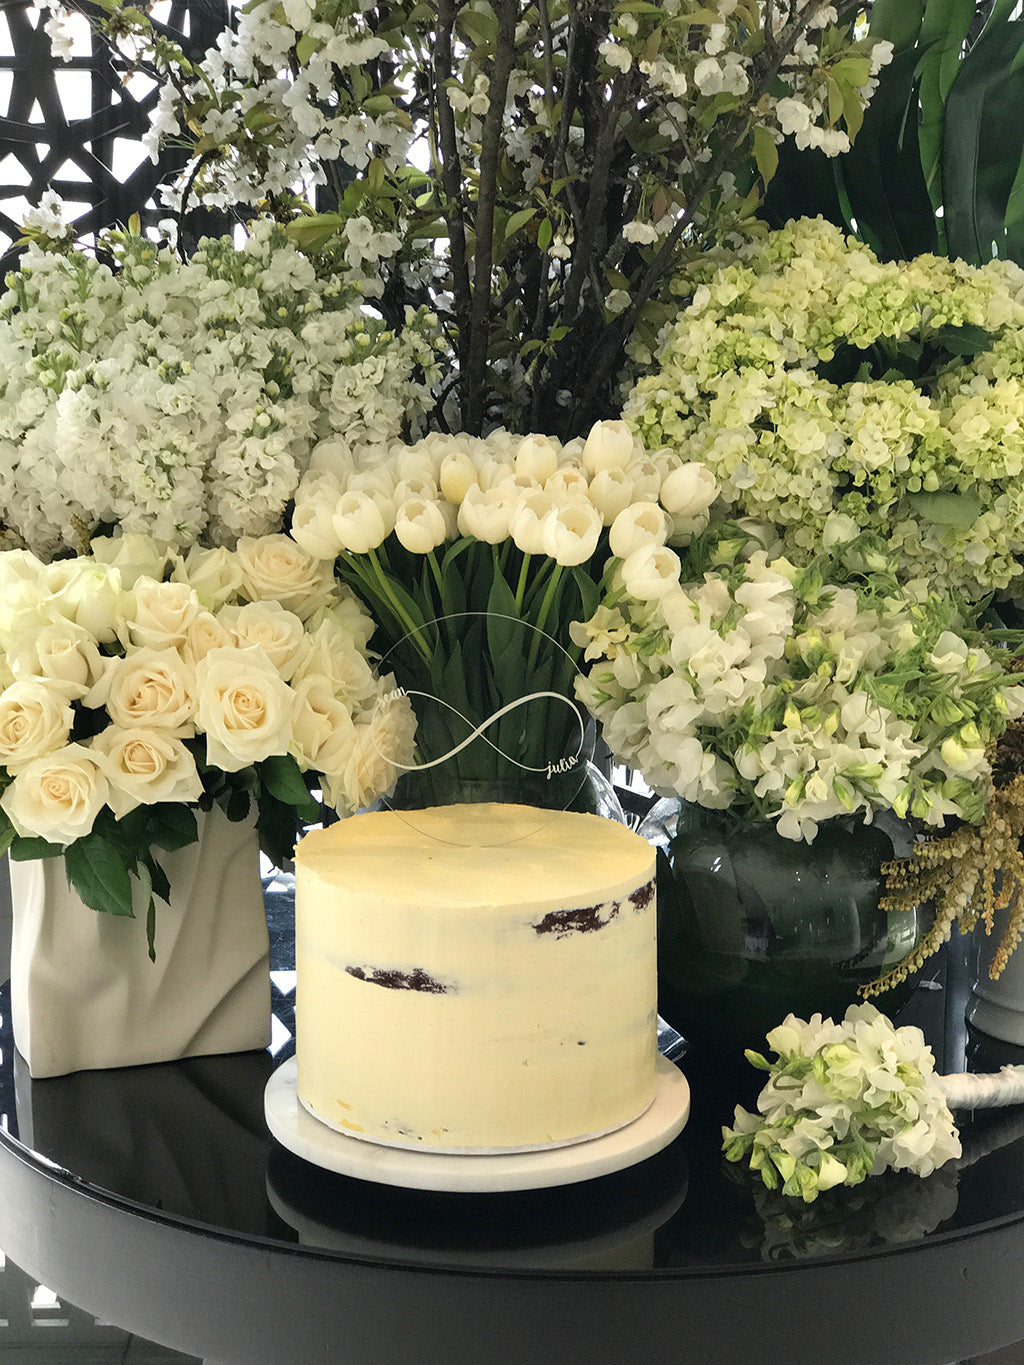 Wedding cake surrounded by white wedding flowers